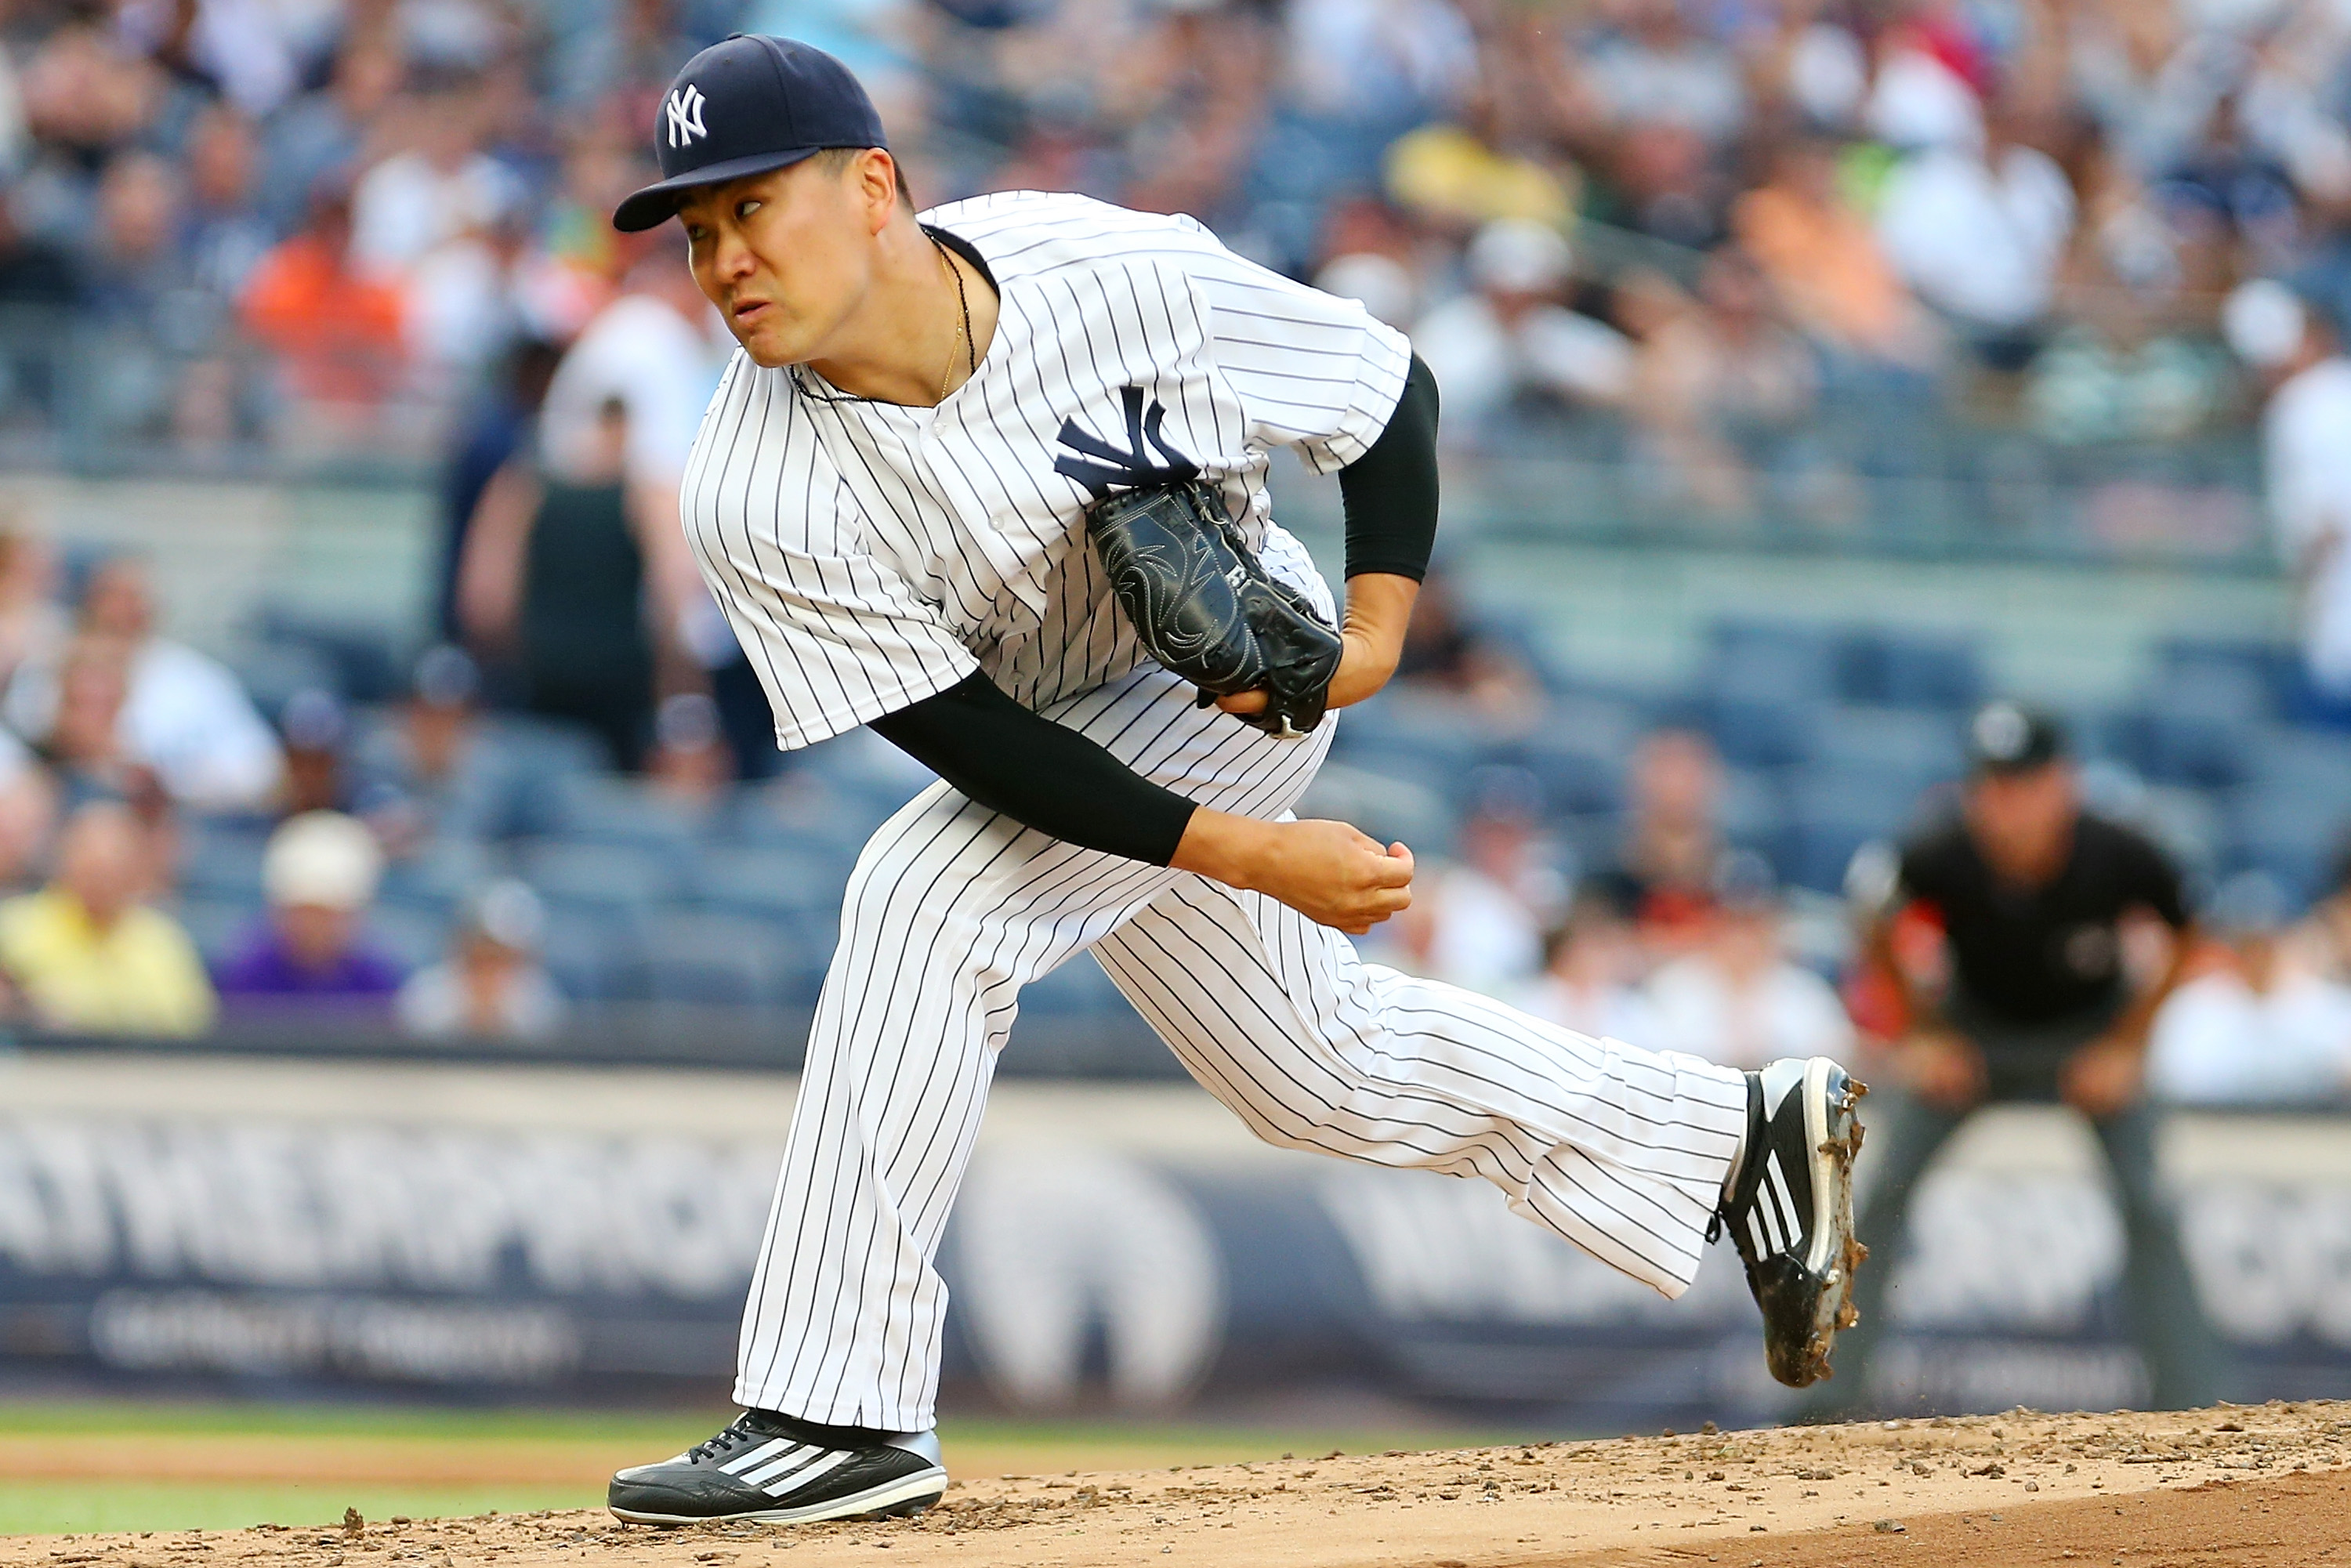 NEW YORK, NY - JULY 22: Masahiro Tanaka #19 of the New York Yankees pitches in the second inning gainst the San Francisco Giants at Yankee Stadium on July 22, 2016 in the Bronx borough of New York City. (Photo by Mike Stobe/Getty Images)